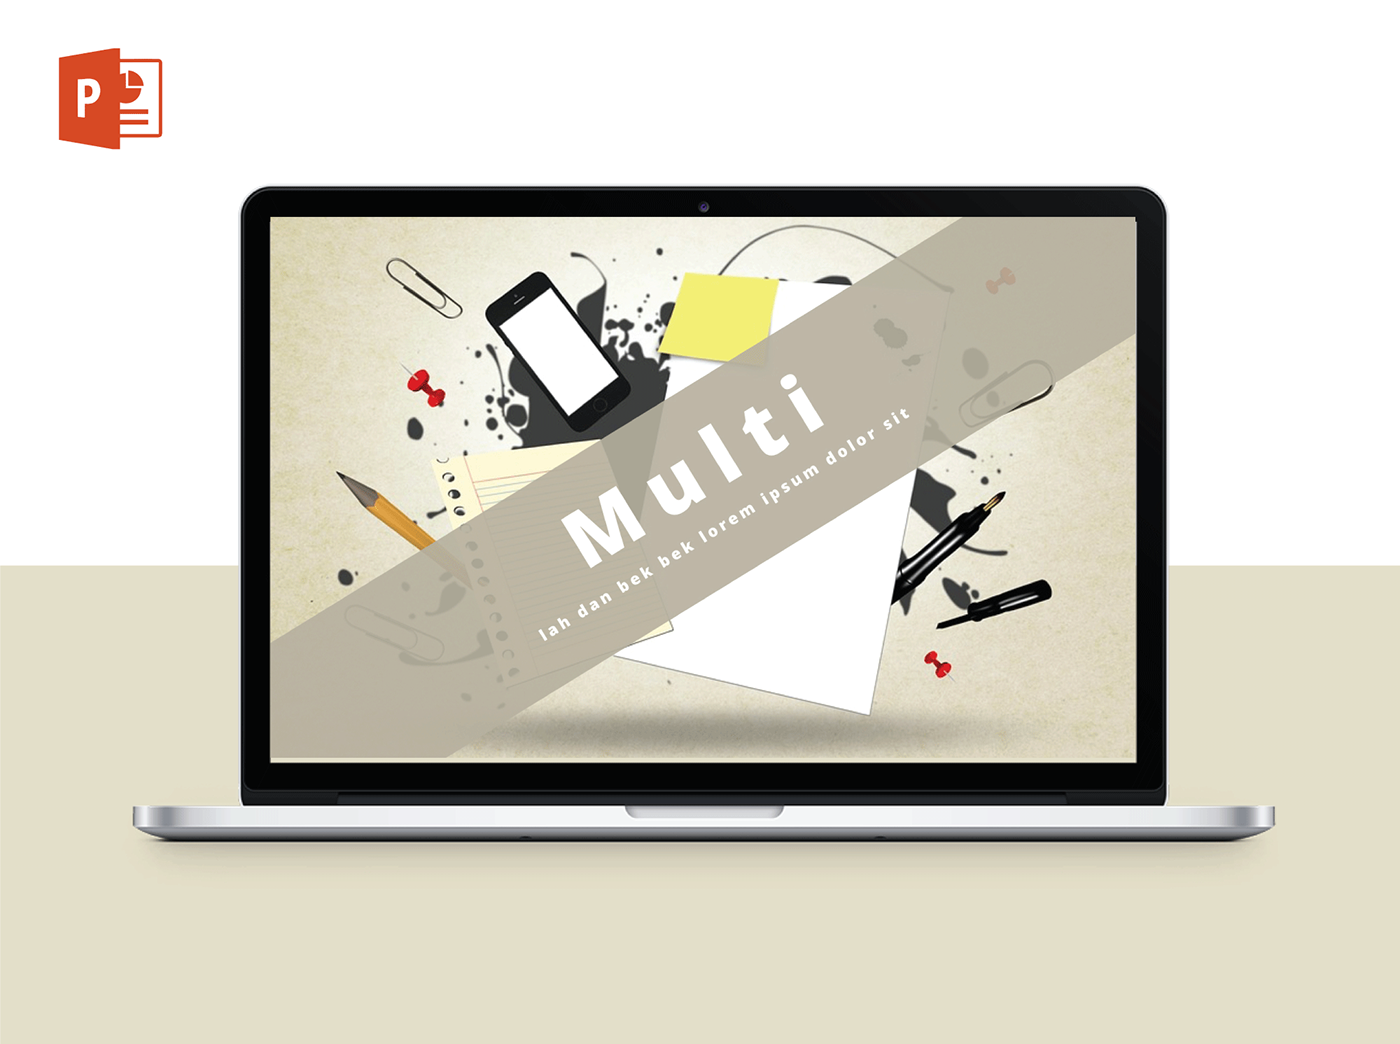 Free multi powerpoint template on behance has been present at our place patherostudio presentation template which you can download it for free if you need a powerpoint template for making your toneelgroepblik Image collections